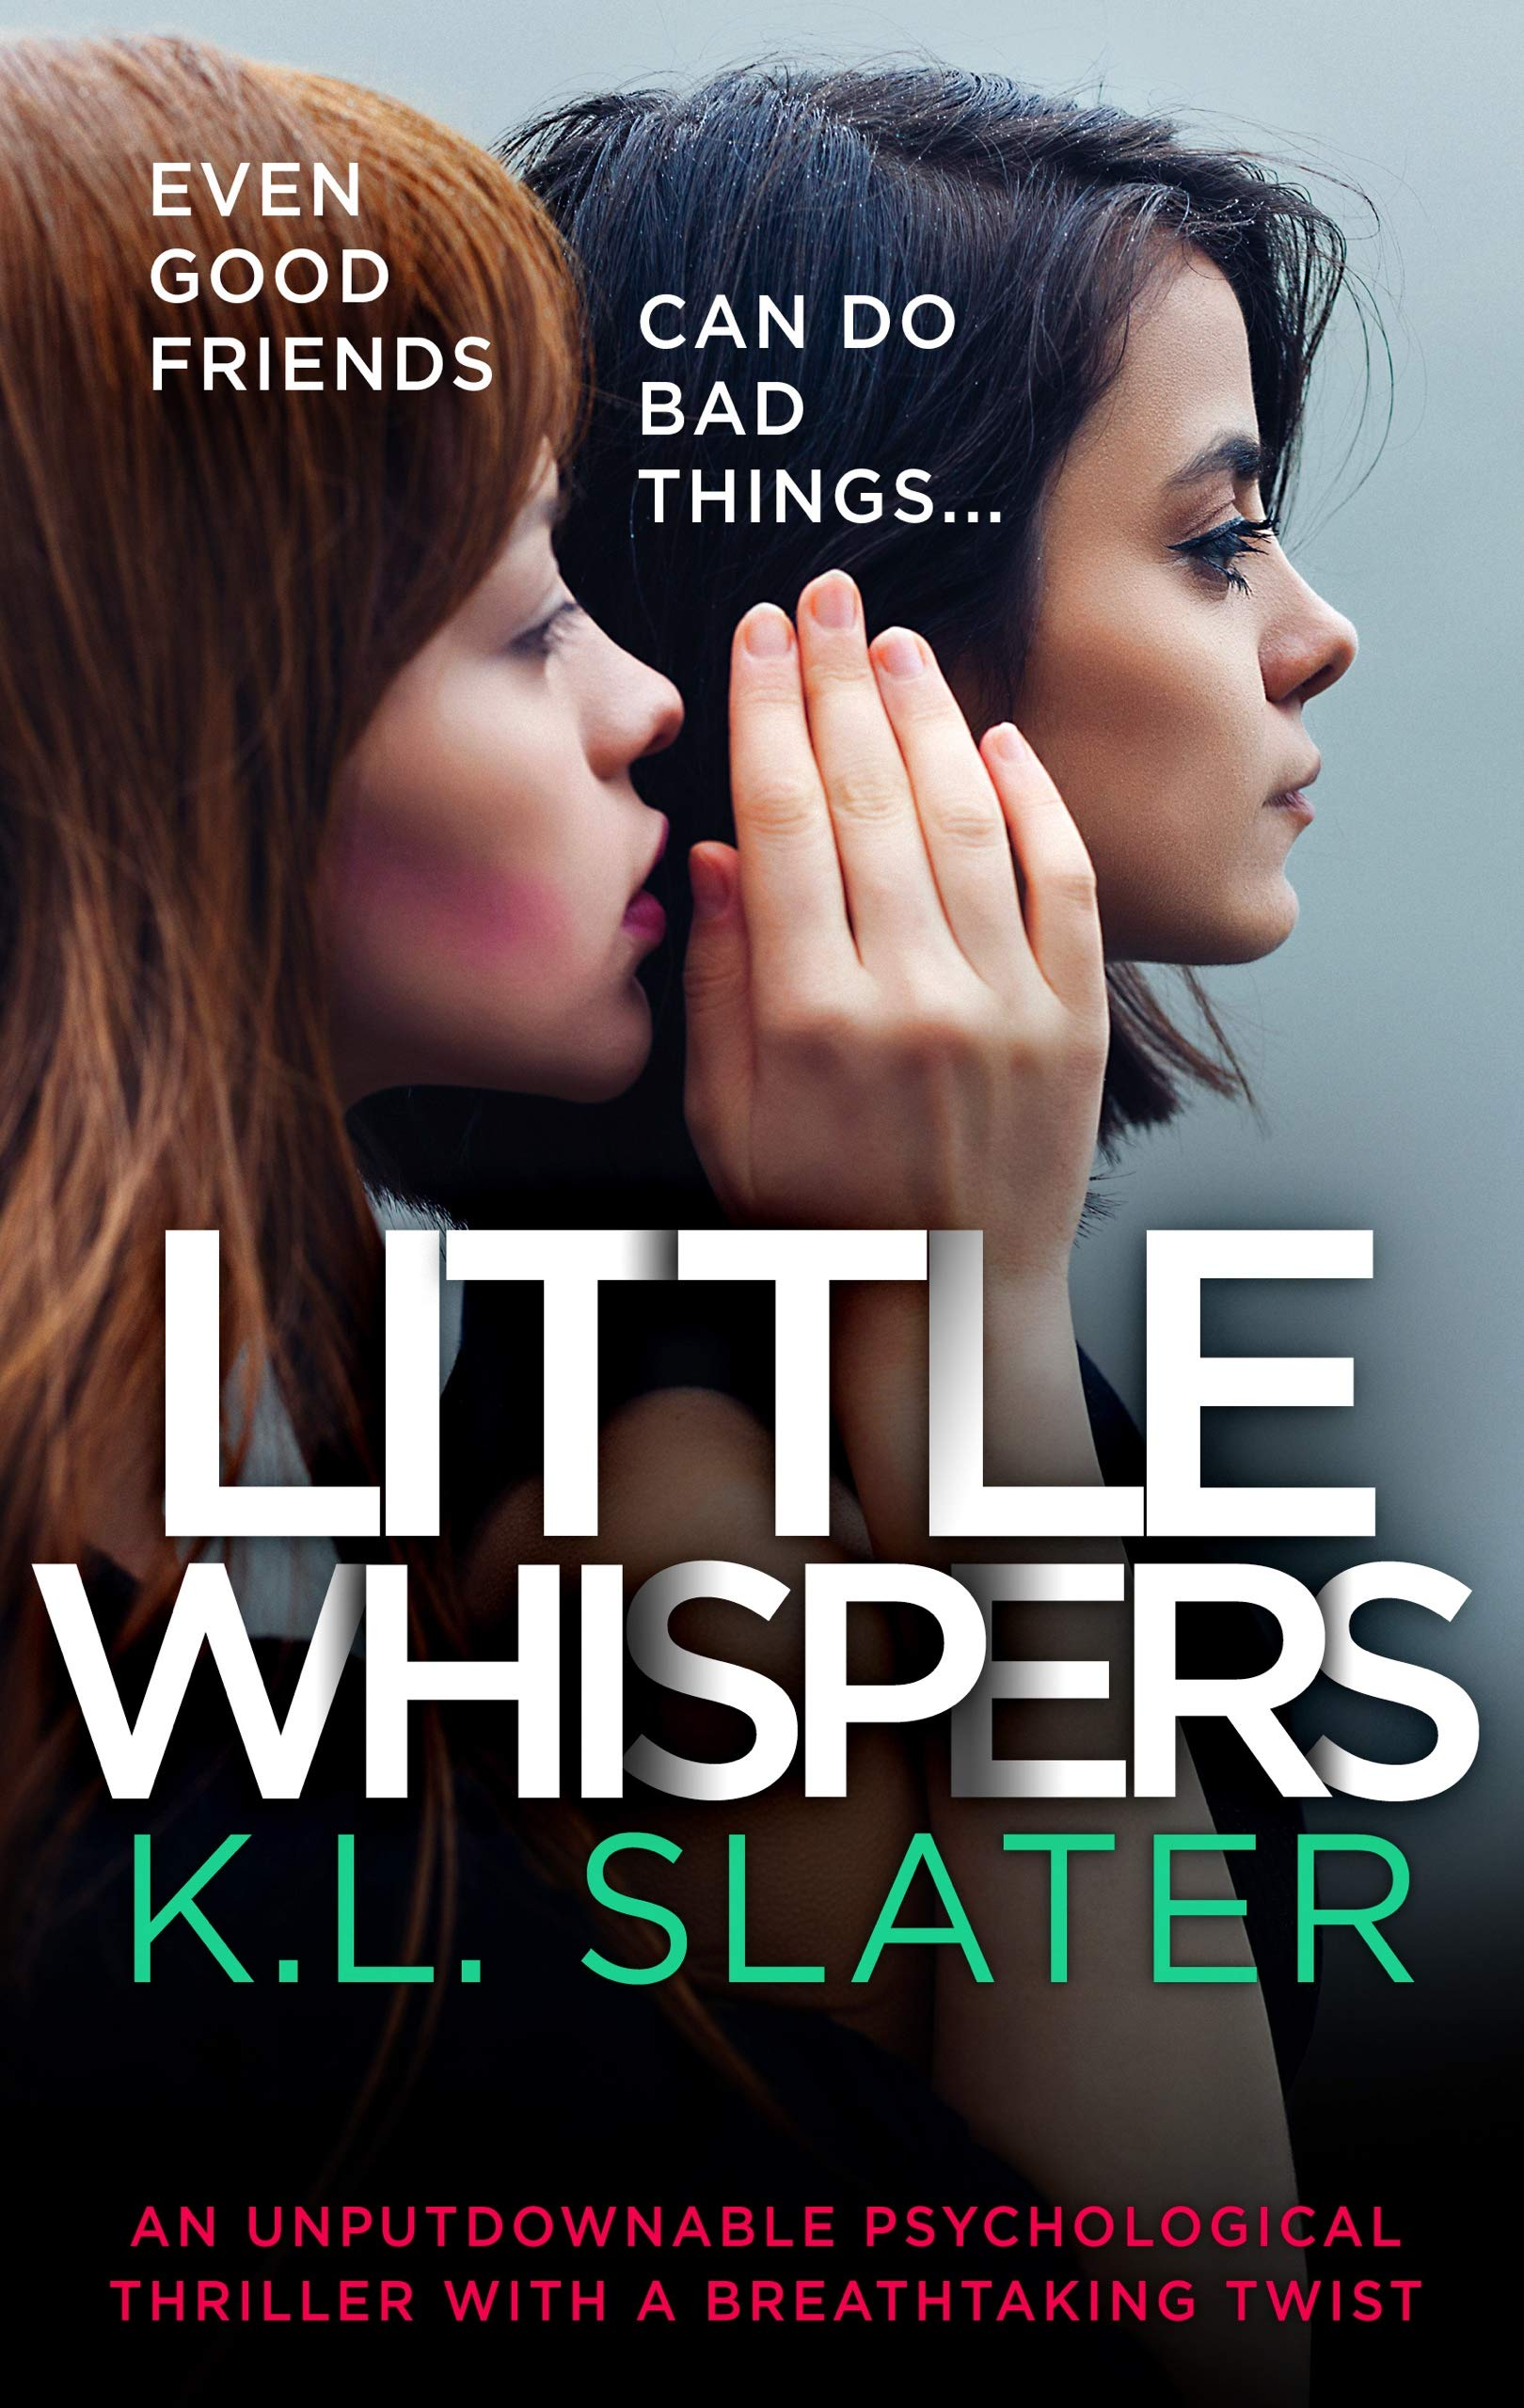 Cover image of Little Whispers by K.L. Slater